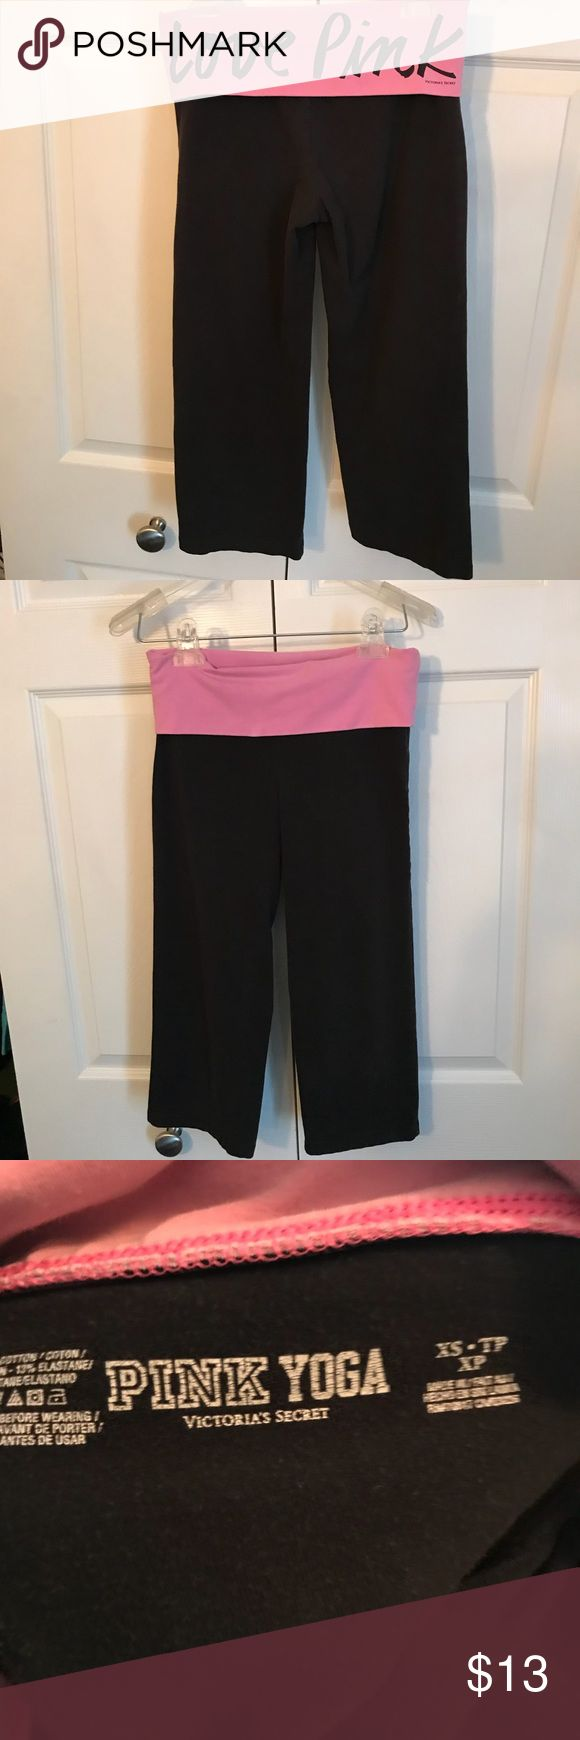 💜Victoria's Secret Pink size XS yoga capris 💗 Victoria's Secret Pink size xtra small yoga capri pants. In pretty good condition, black with a light purple waist. Perfect for the gym or to chill. PINK Victoria's Secret Pants Capris